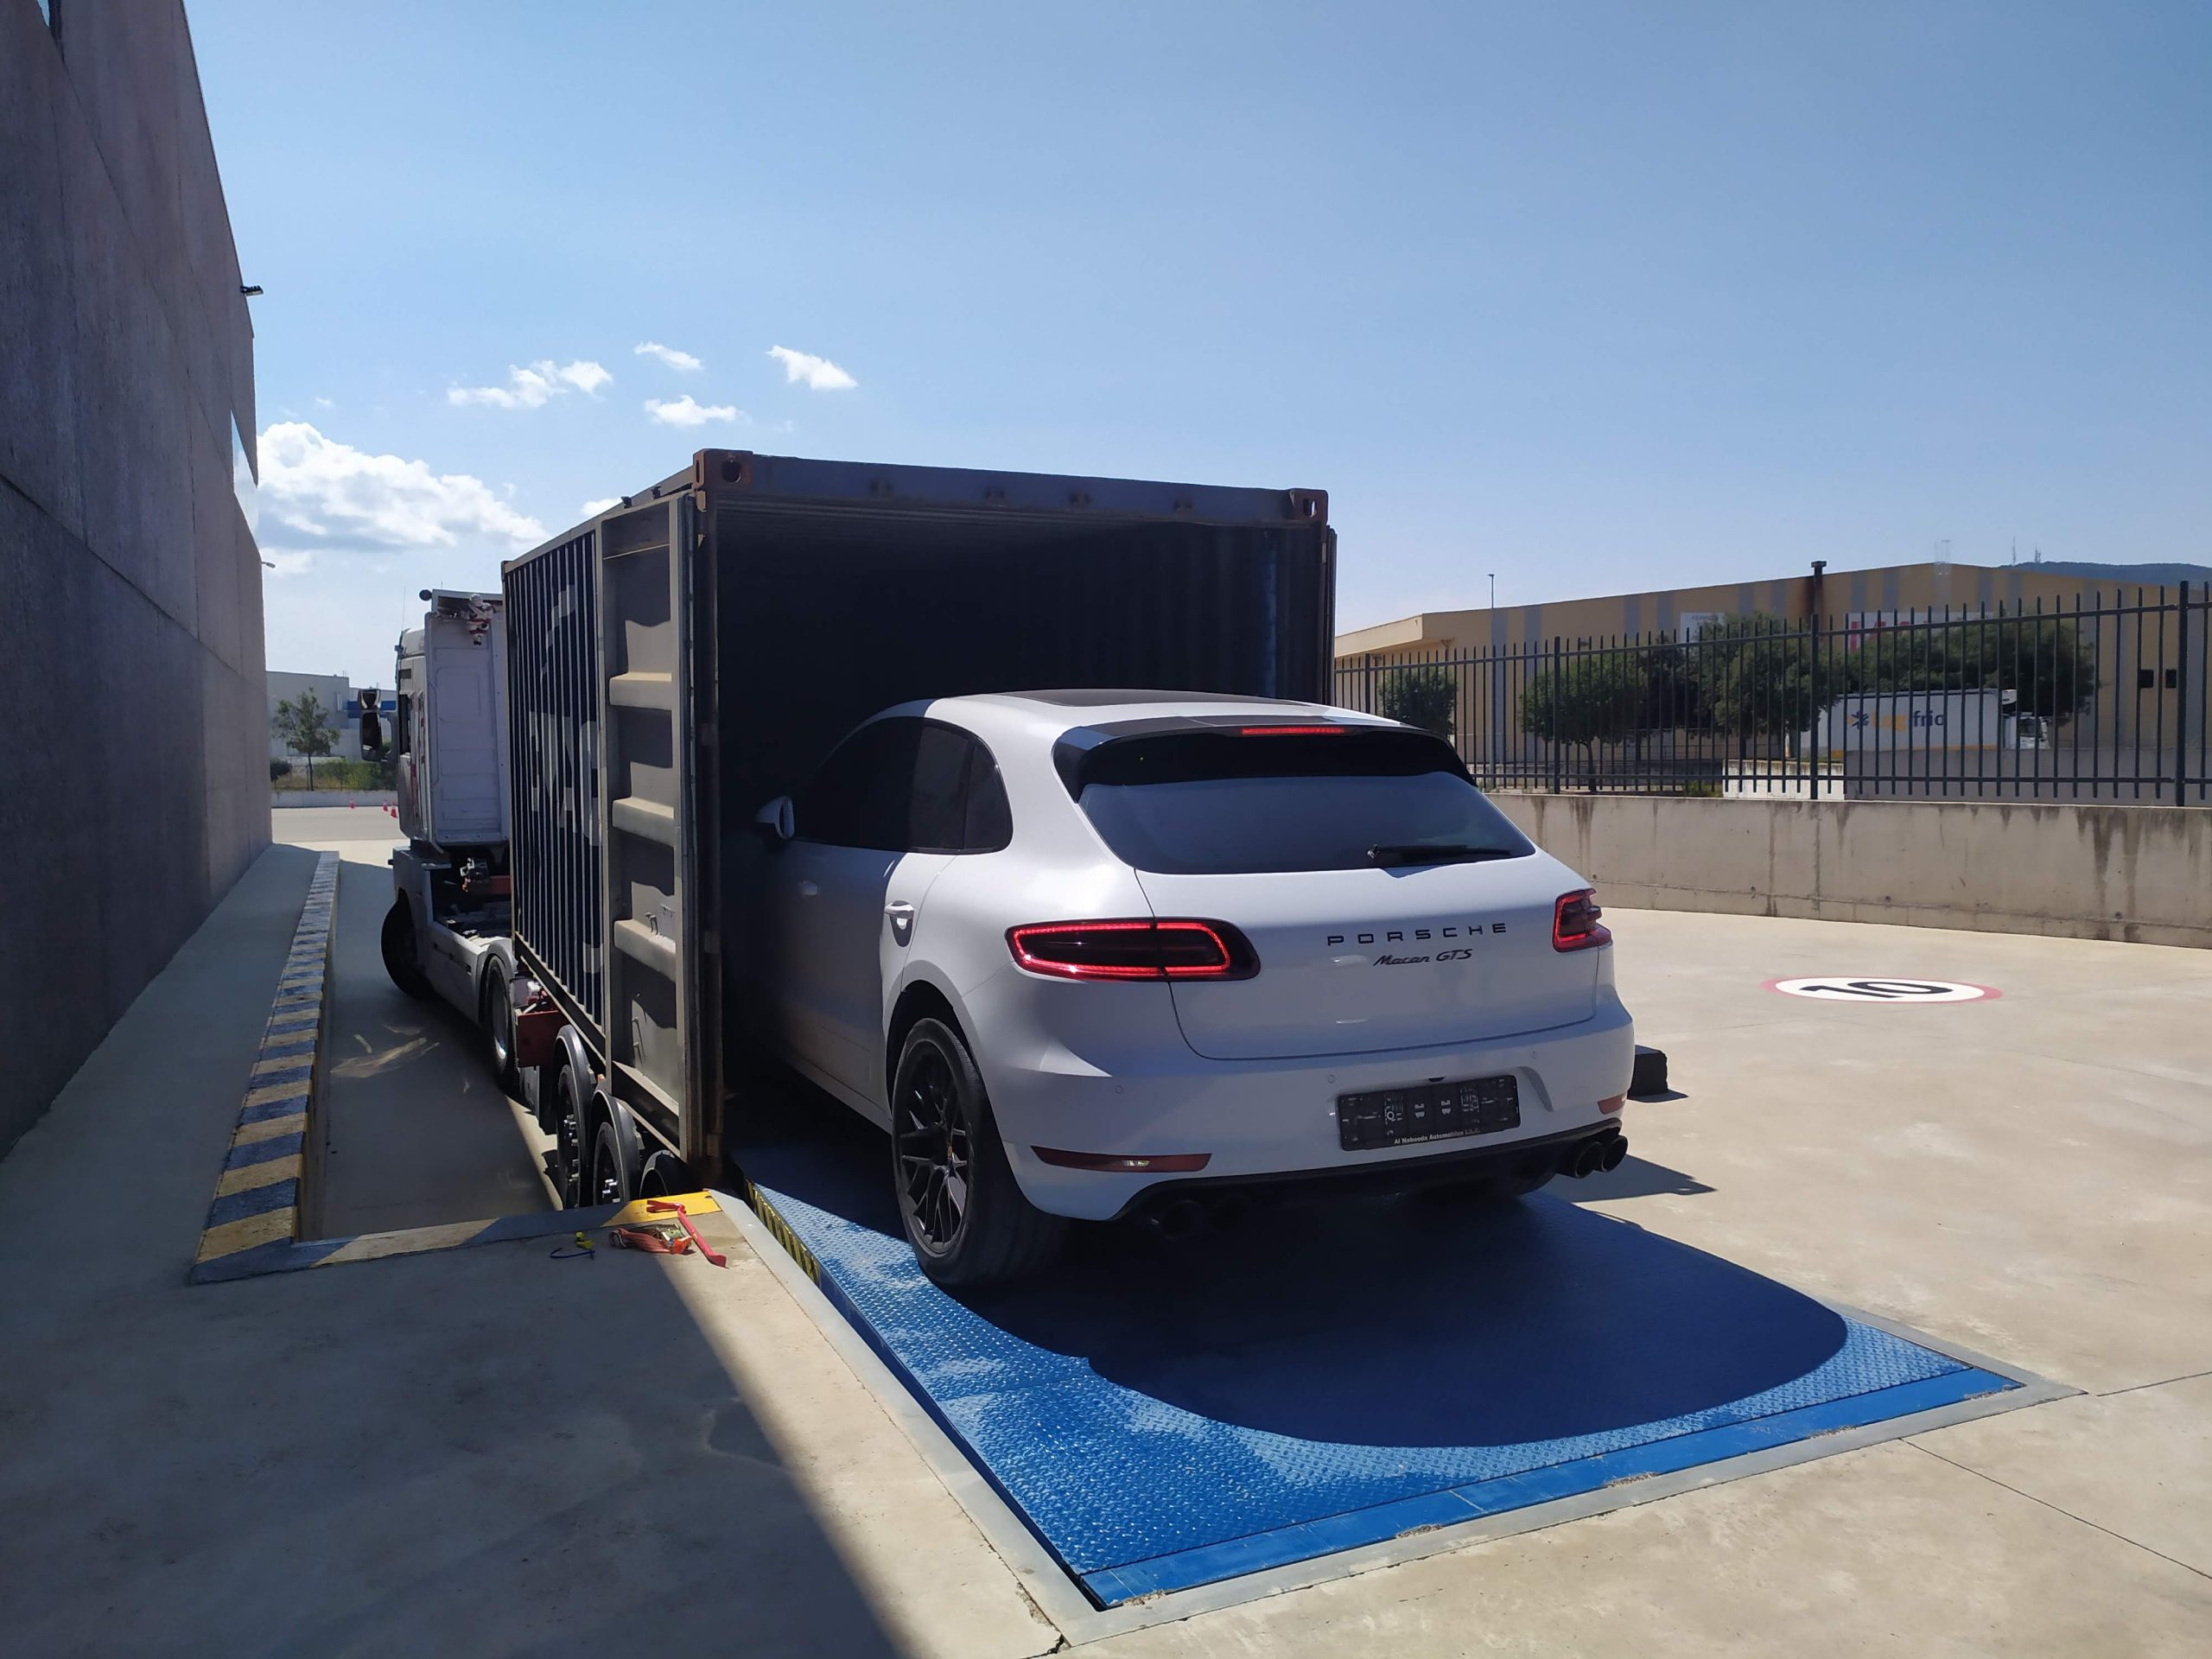 How much does it cost to ship a car from Dubai to the UK?